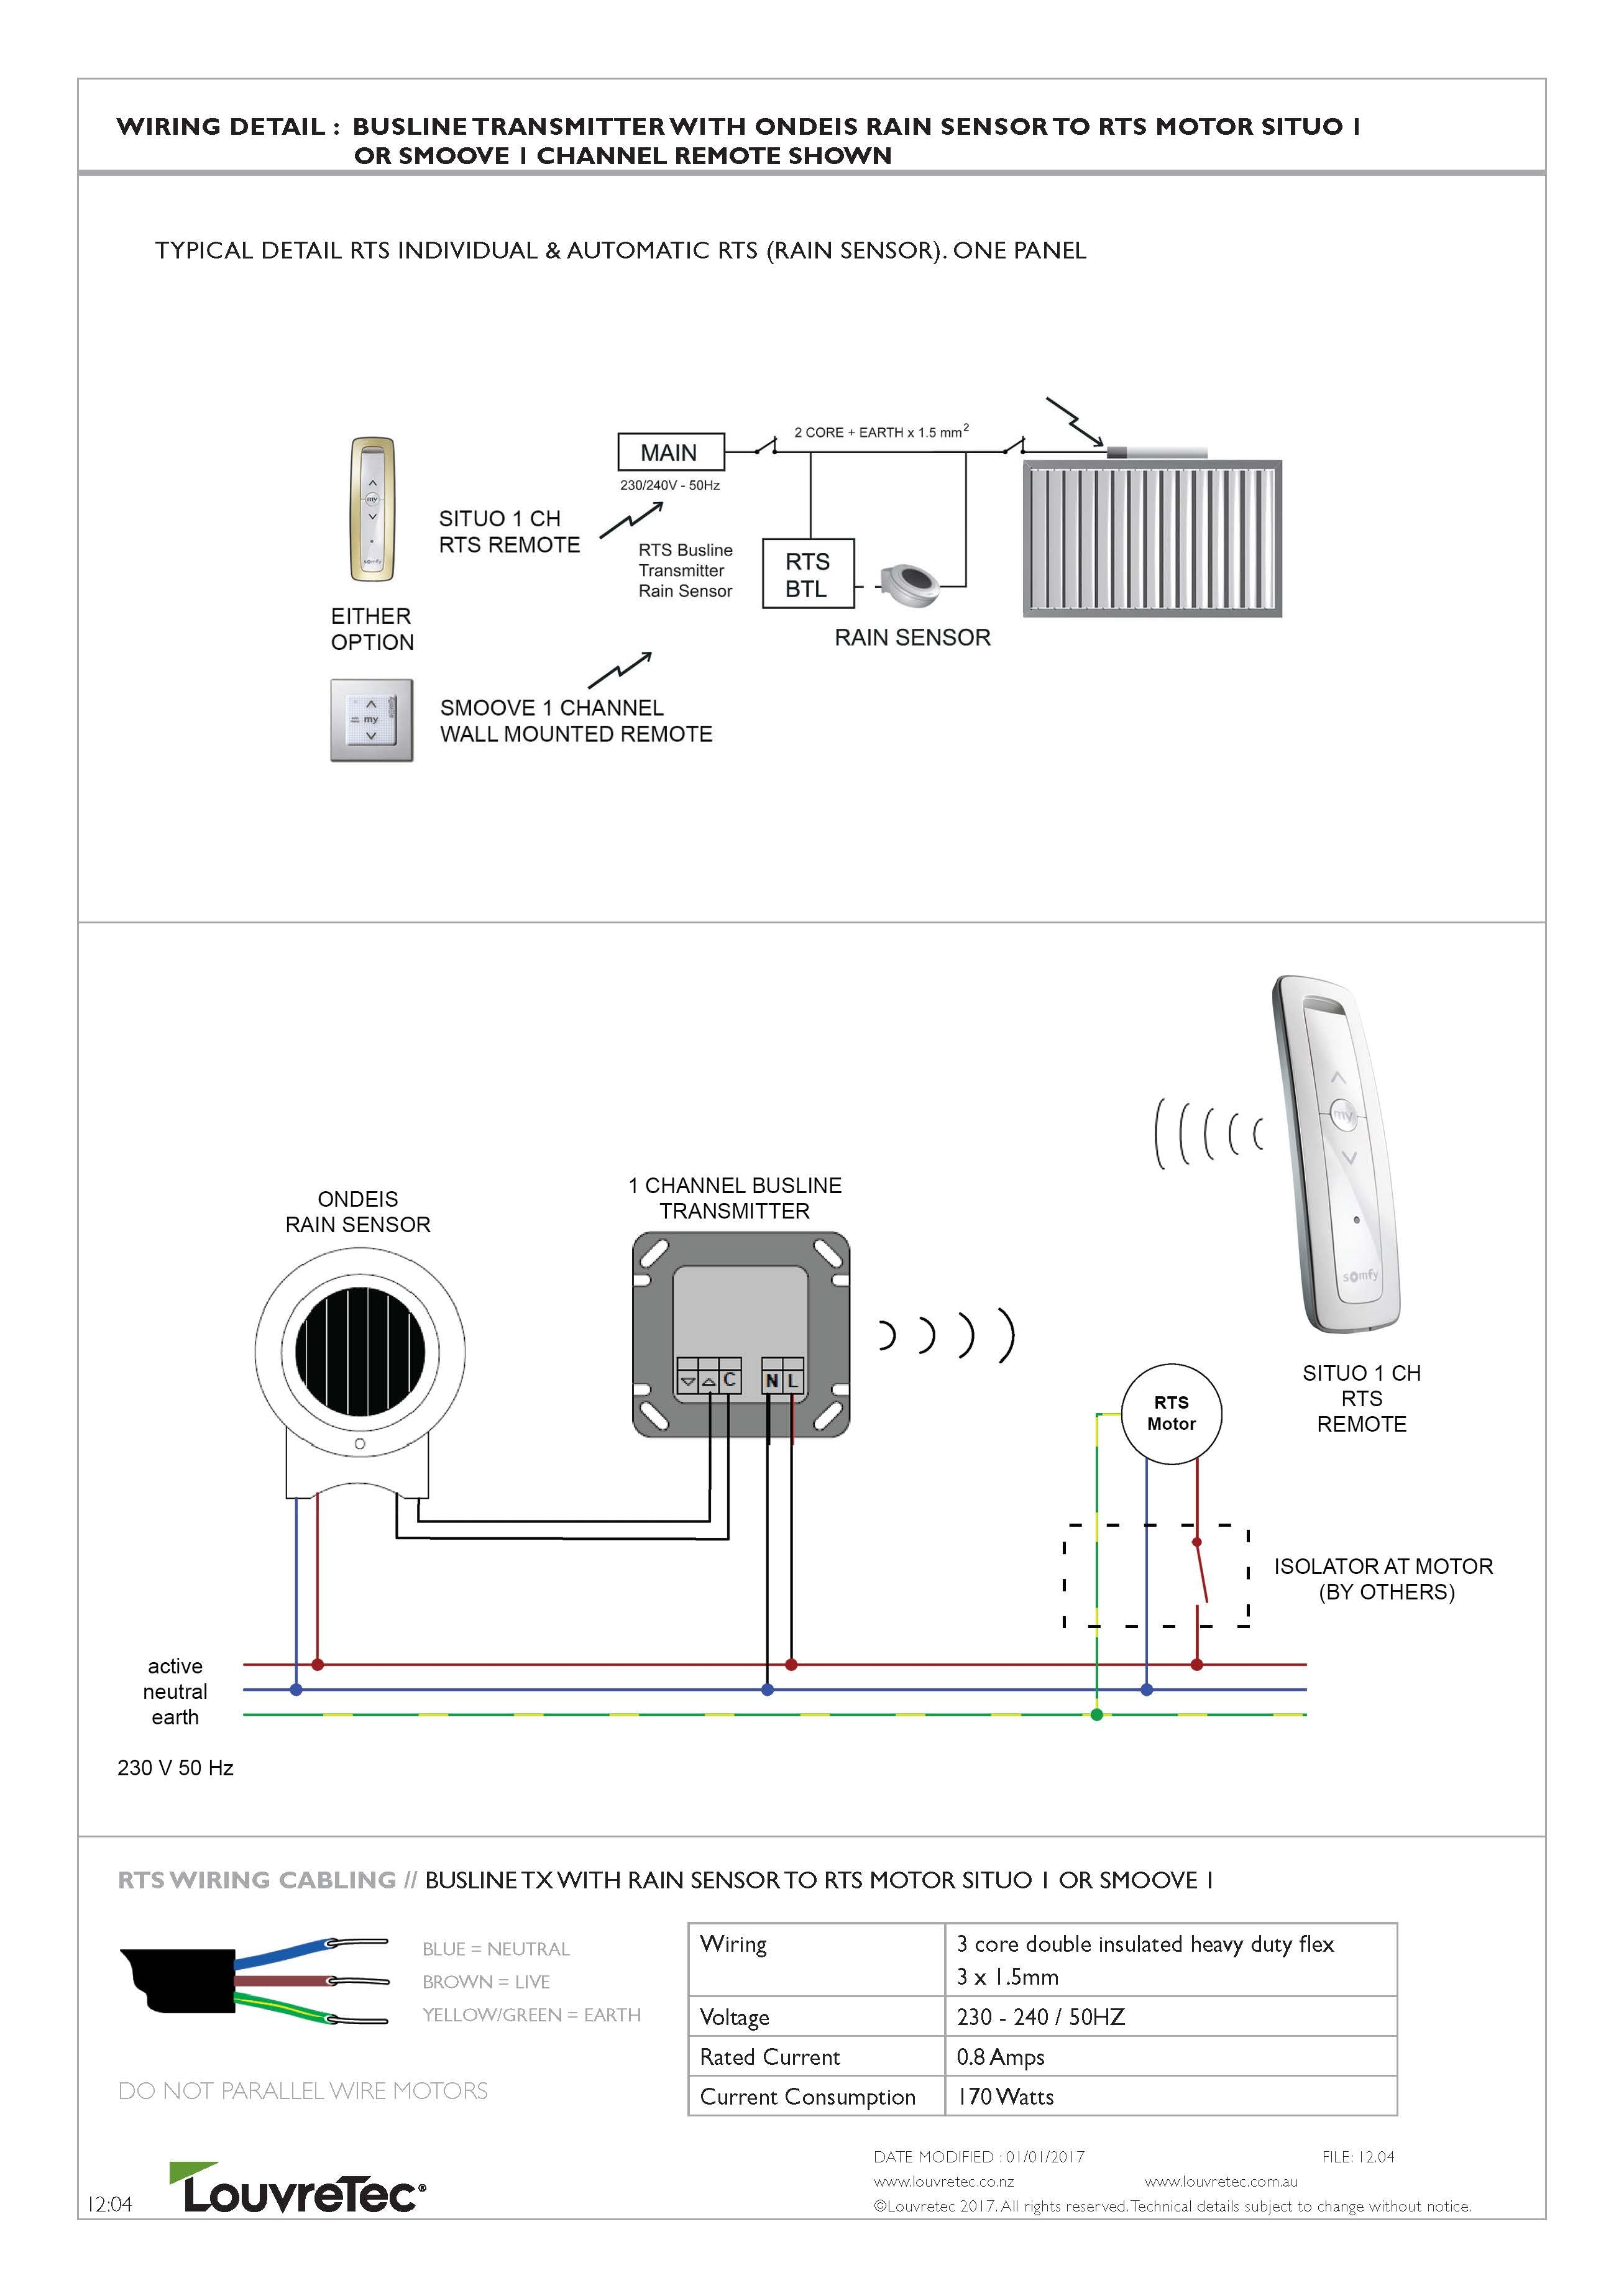 12.04_f4be8a5c 6949 413b b332 3b70383d5df1?v=1502702005 technical wiring diagrams louvretec 3 core and earth wiring diagram at virtualis.co